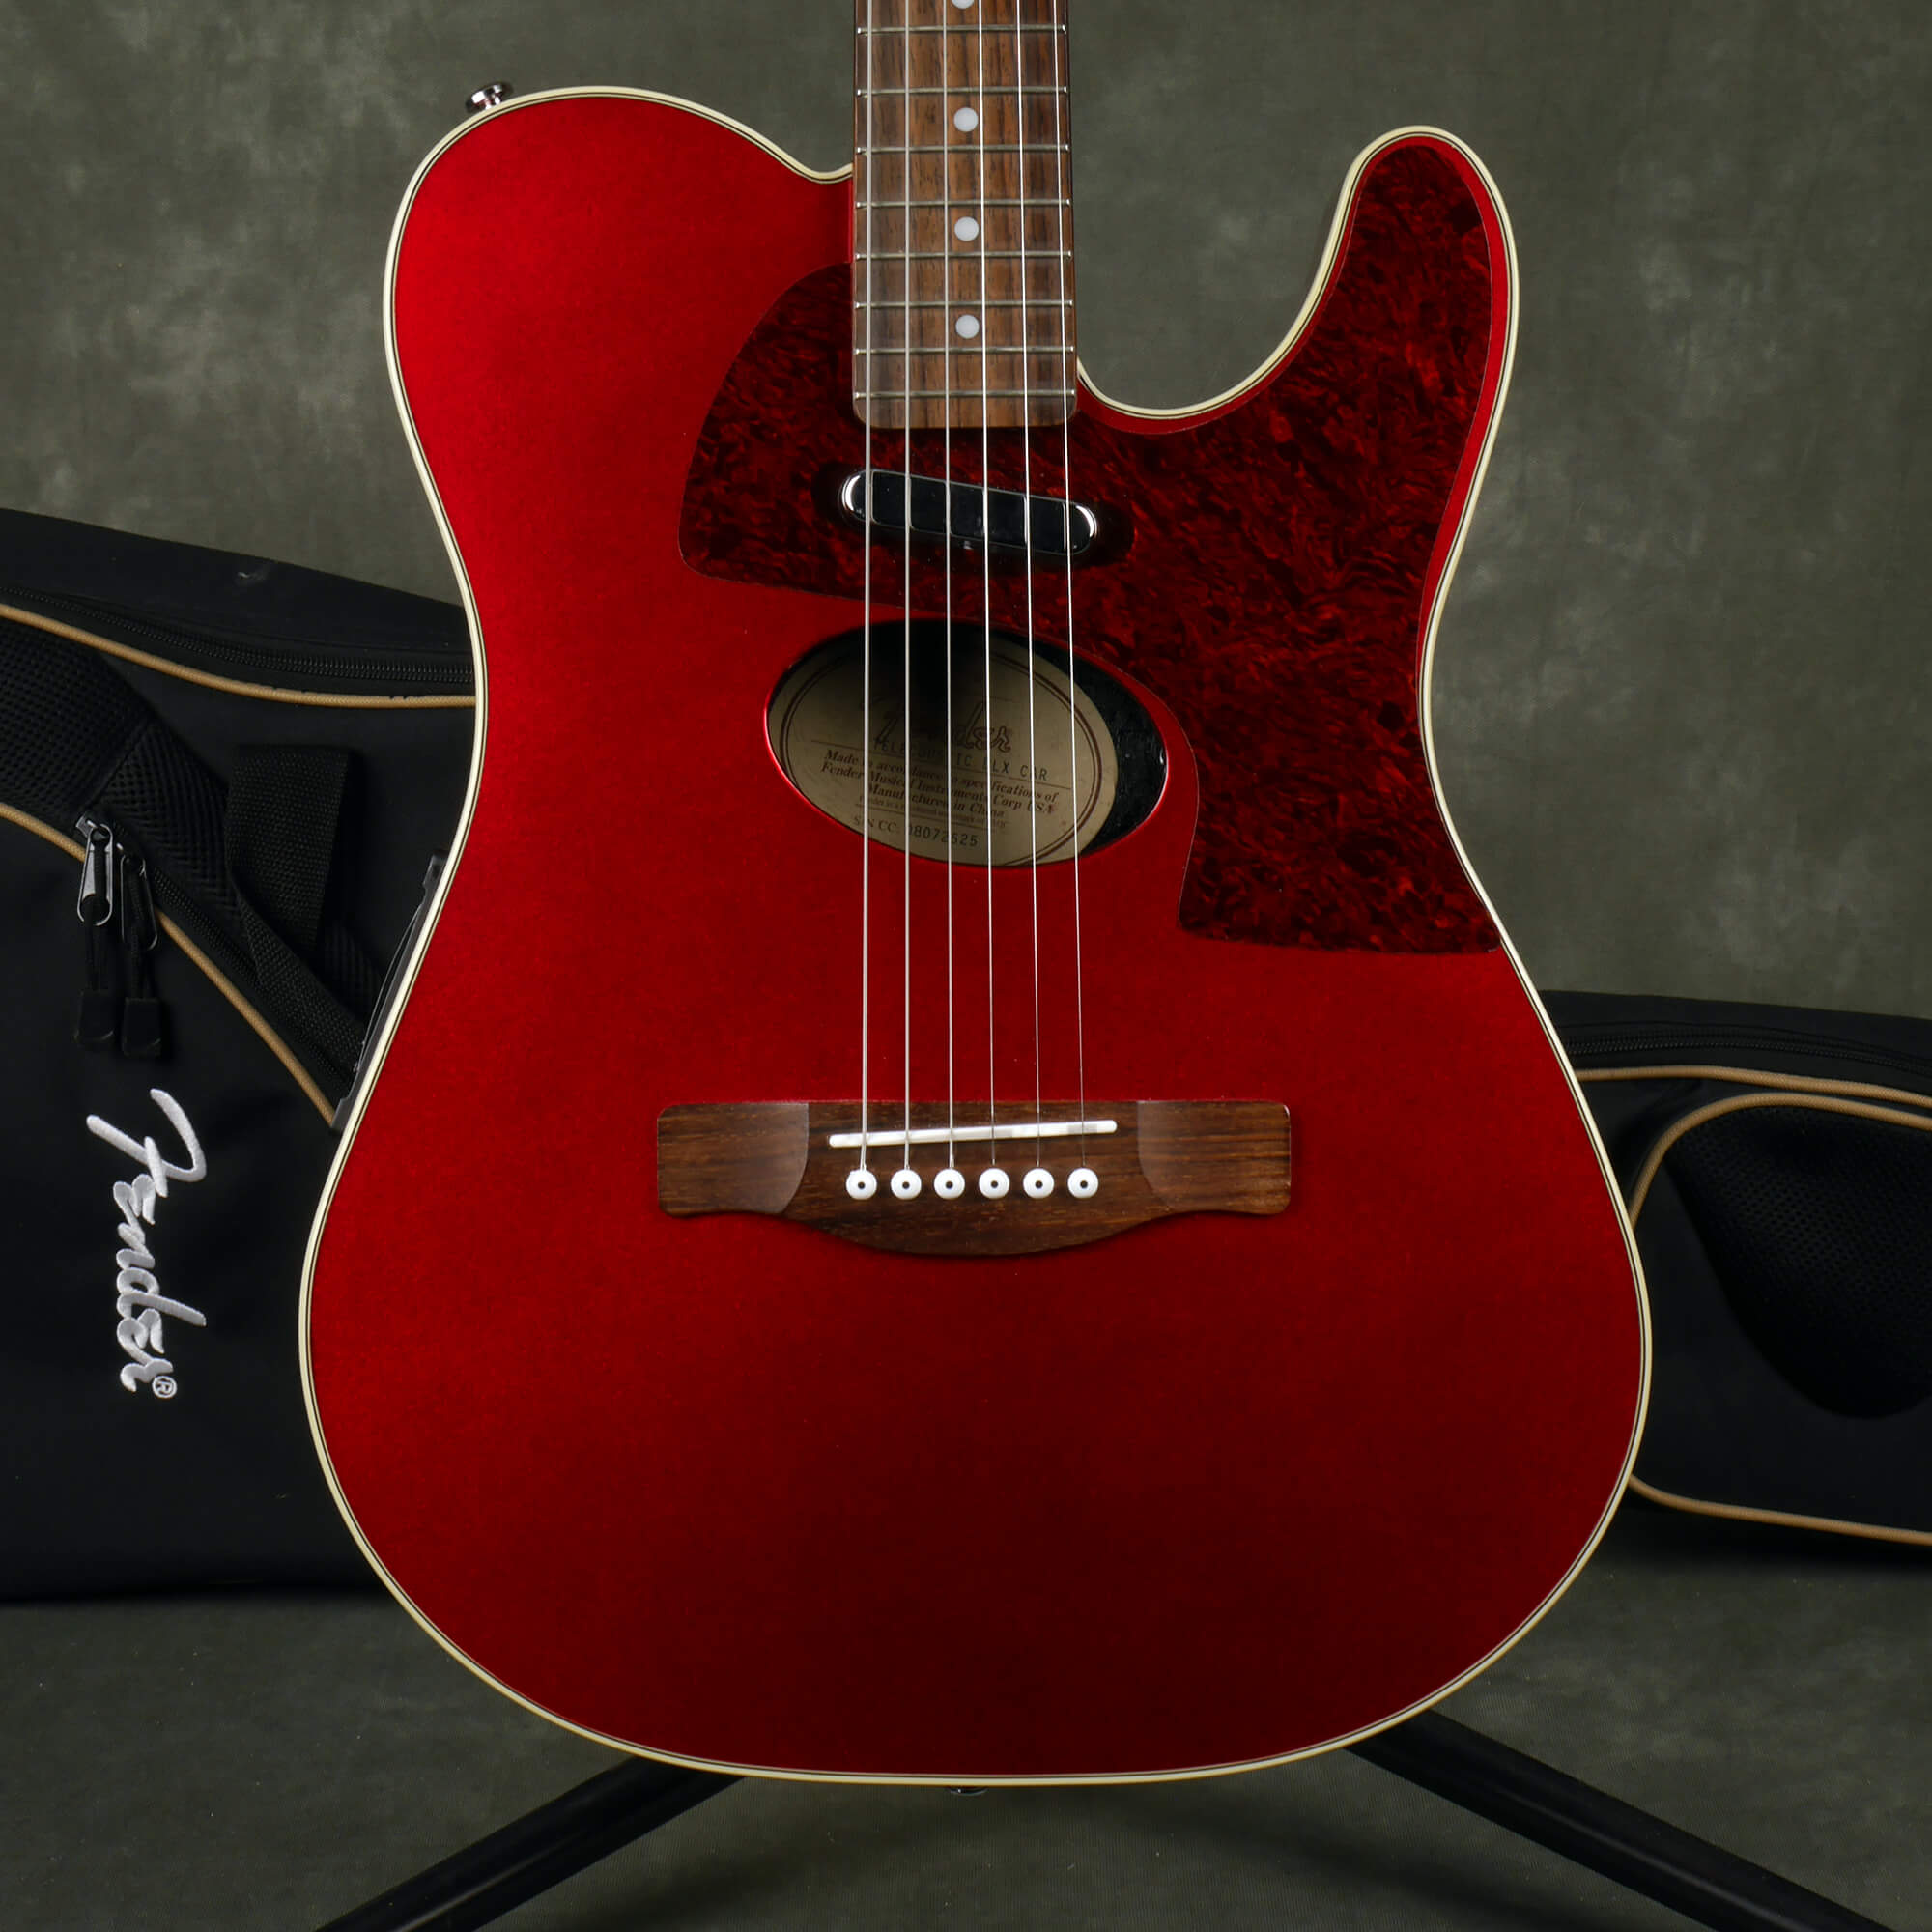 Fender Telecoustic DLX - Candy Apple Red w/Gig Bag - 2nd Hand